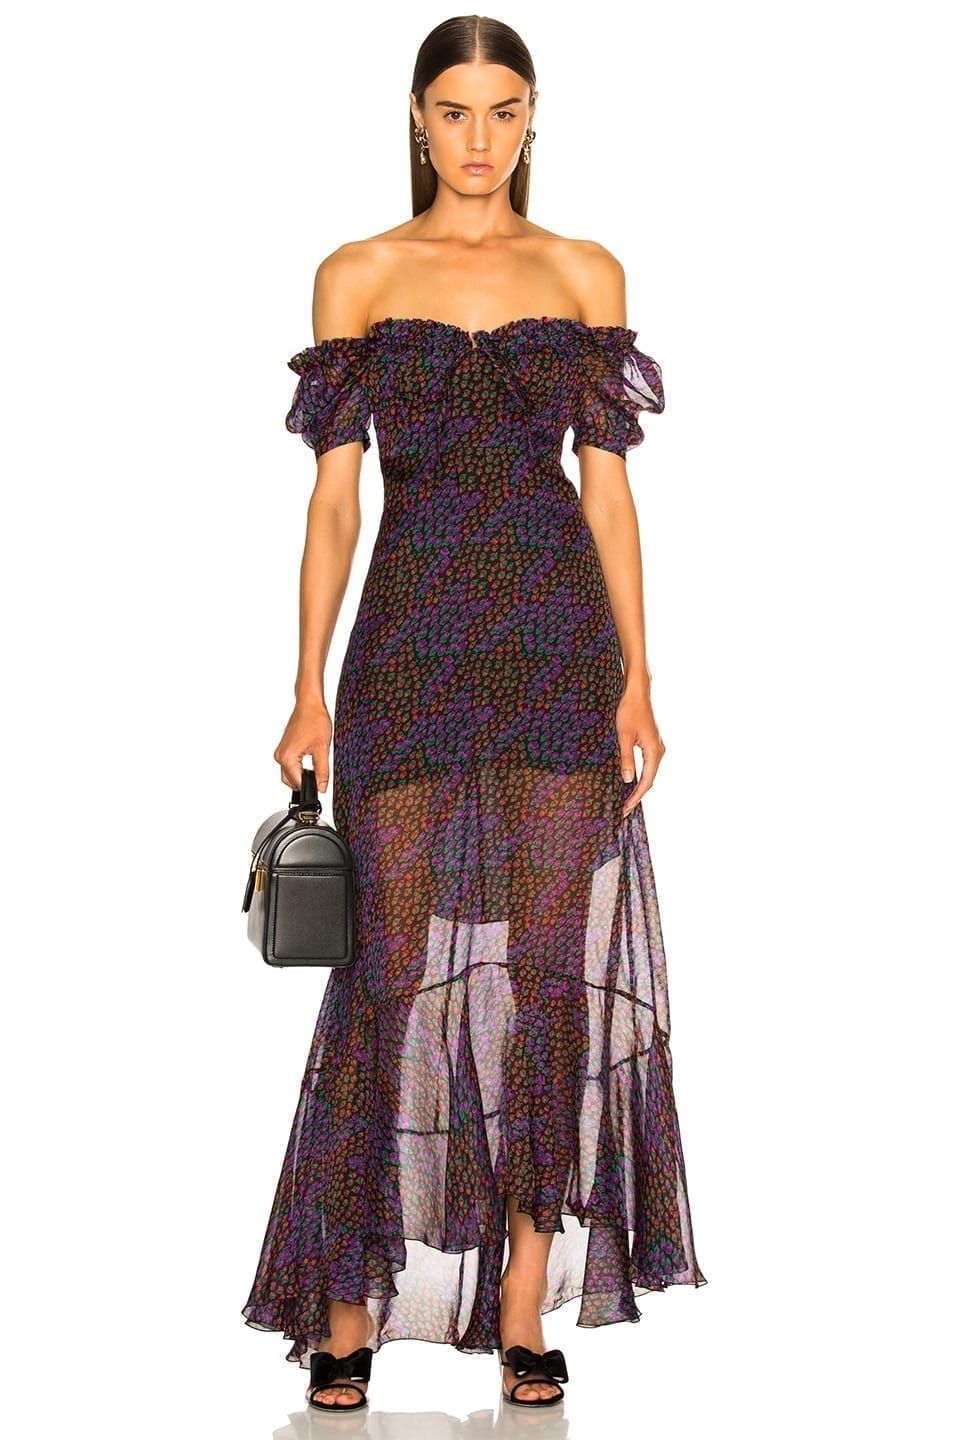 RAQUEL DINIZ Alice Maxi Black / Printed Dress